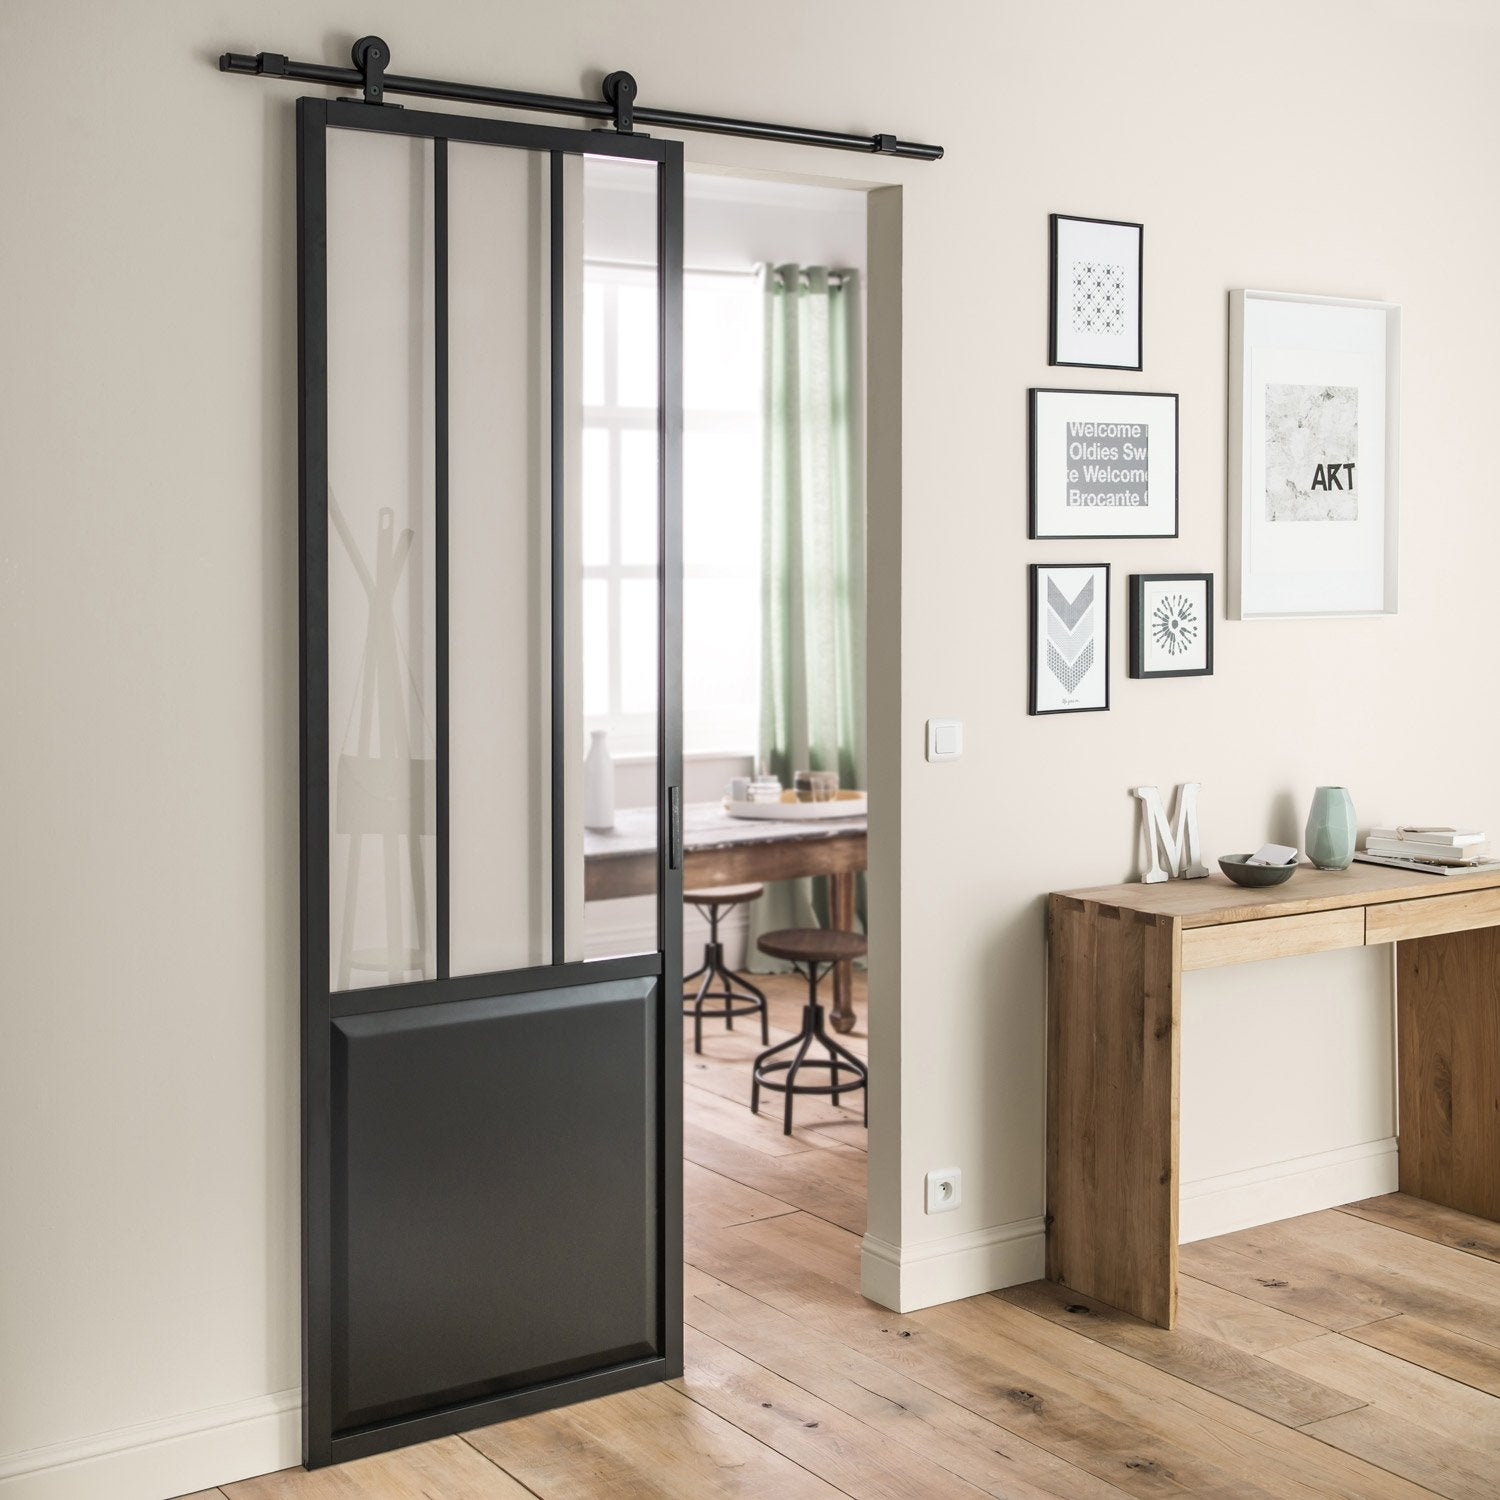 Ensemble porte coulissante atelier mdf rev tu avec le rail for Raille de porte coulissante